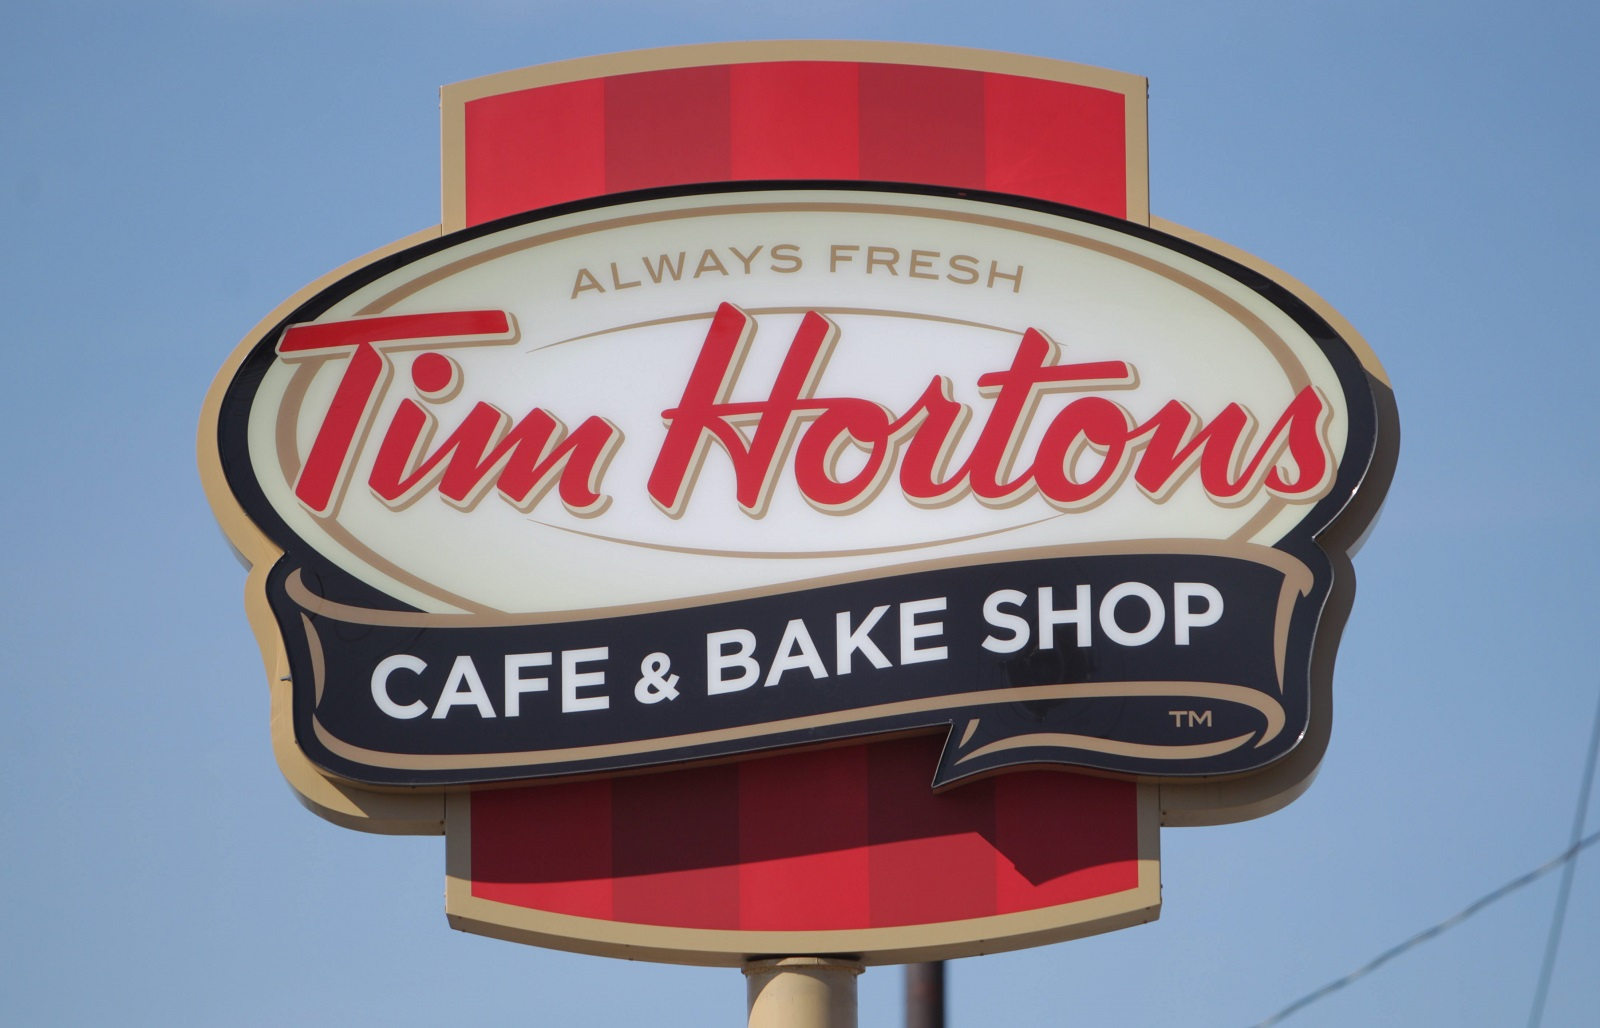 Even though Tim Hortons is heading across the pond, England doesn't appear to be ready for the popular chain. (Sharon Cantillon/Buffalo News)